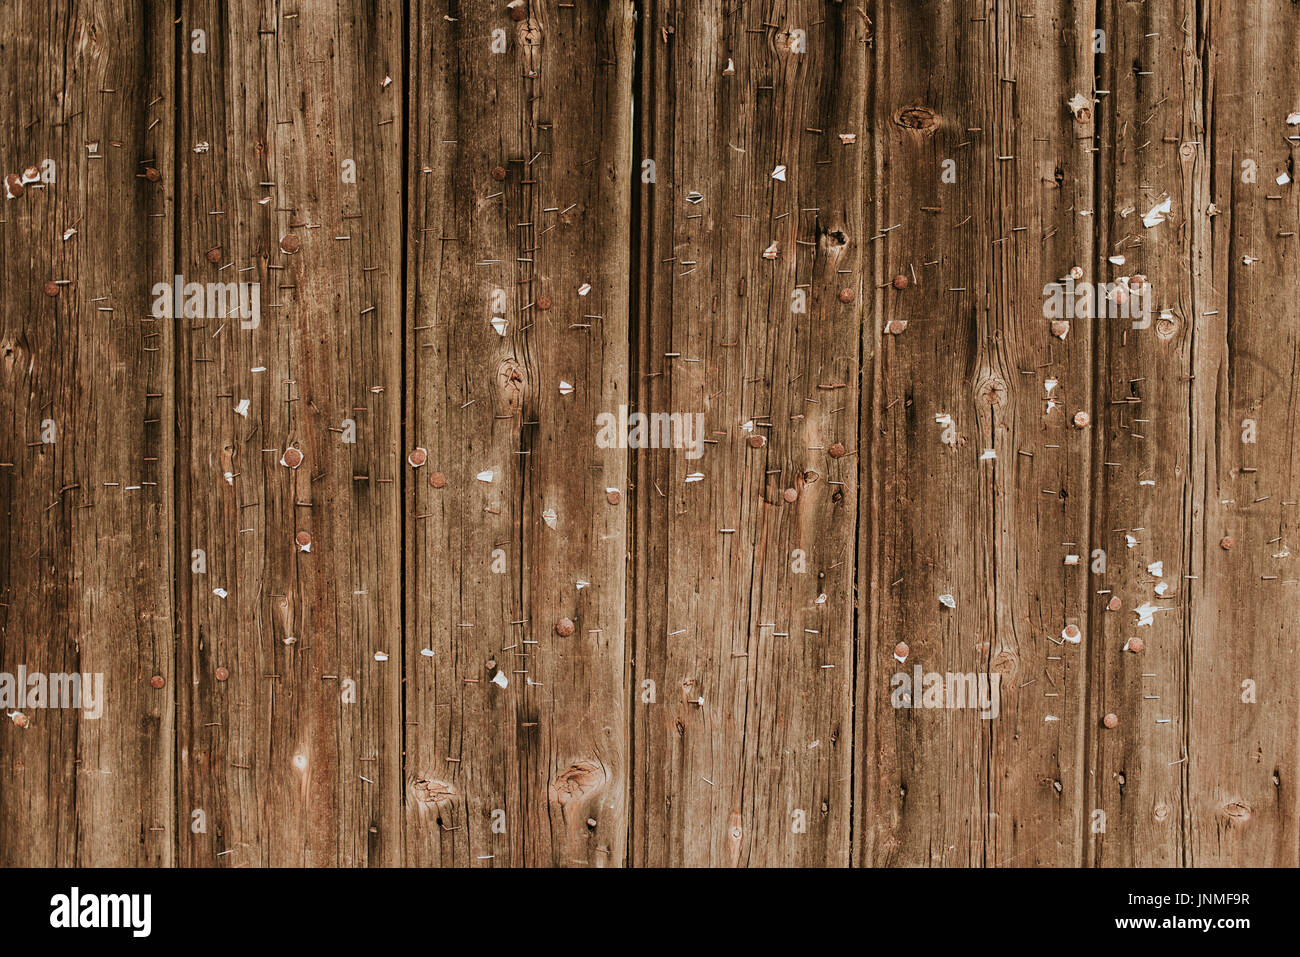 Wooden background with lots of stapler pins in it - Stock Image